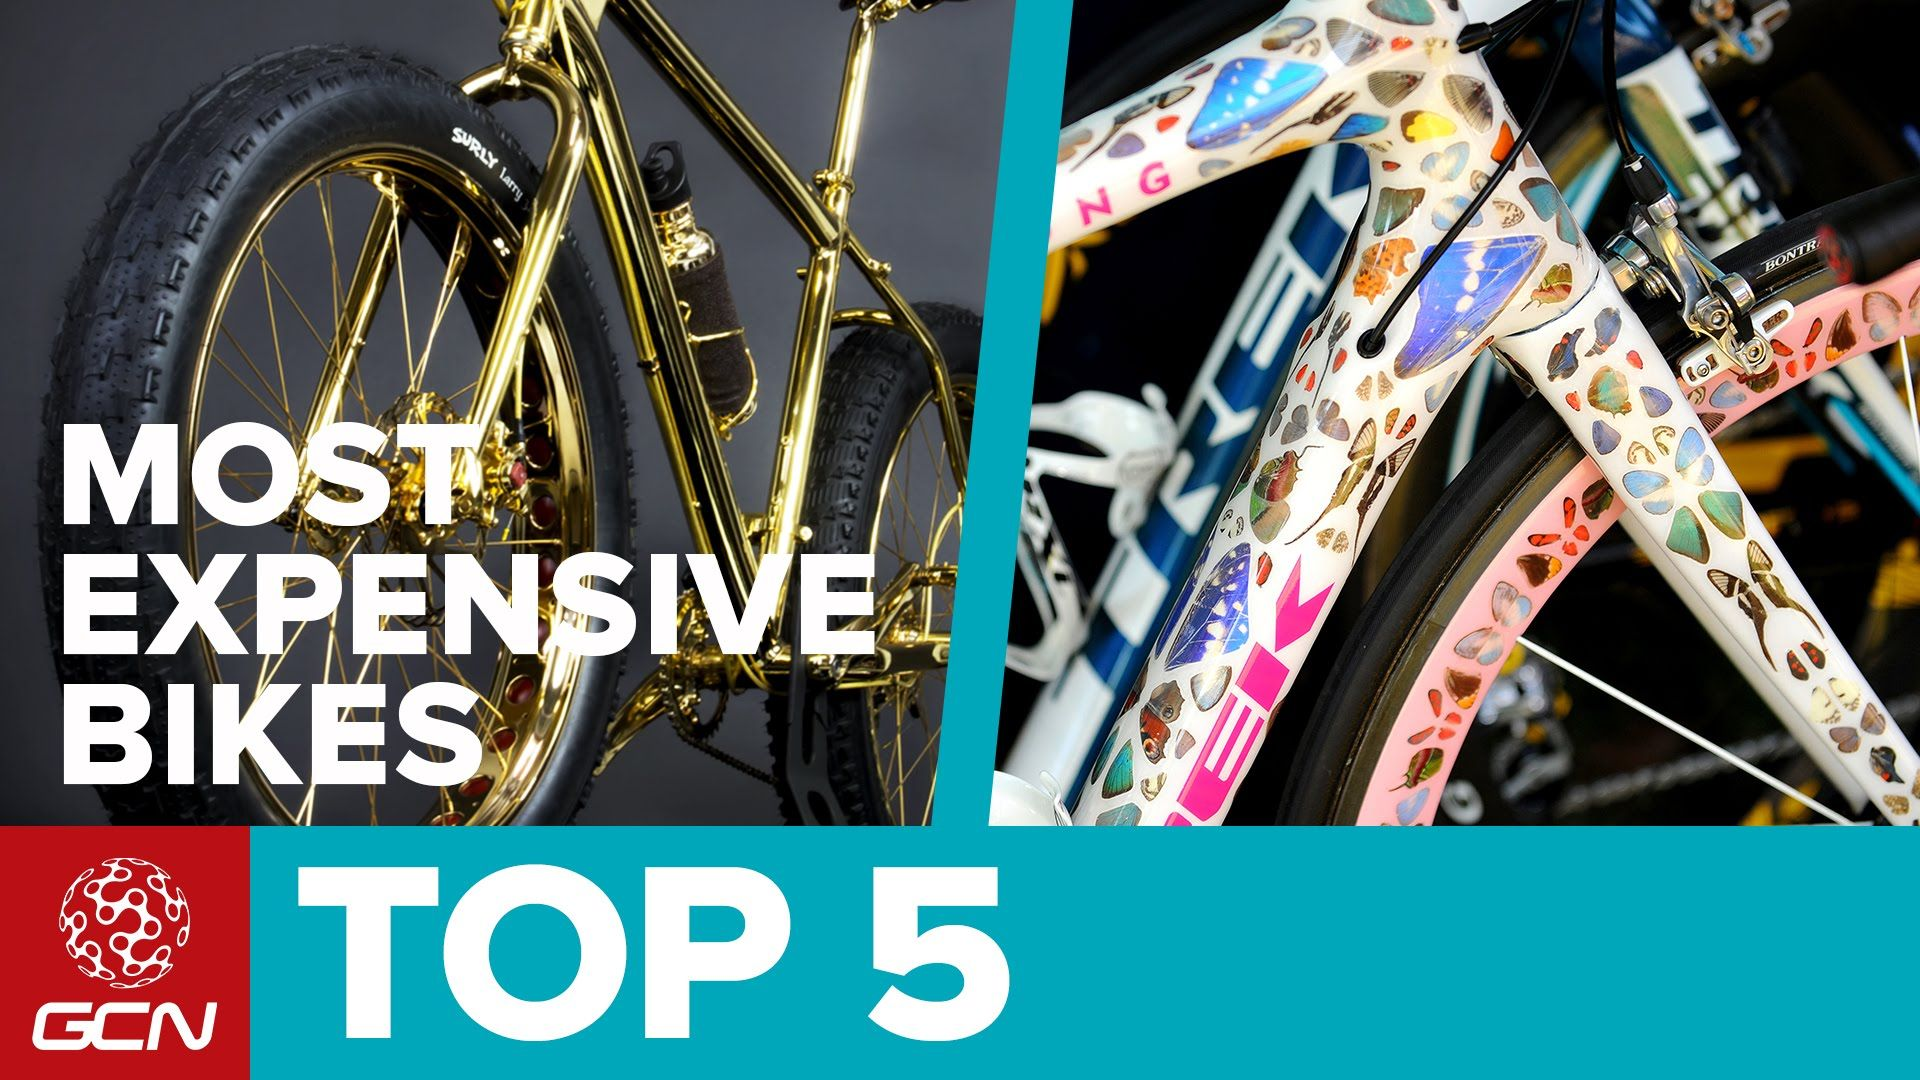 Top 5 Most Expensive Bikes In The World Bike Most Expensive